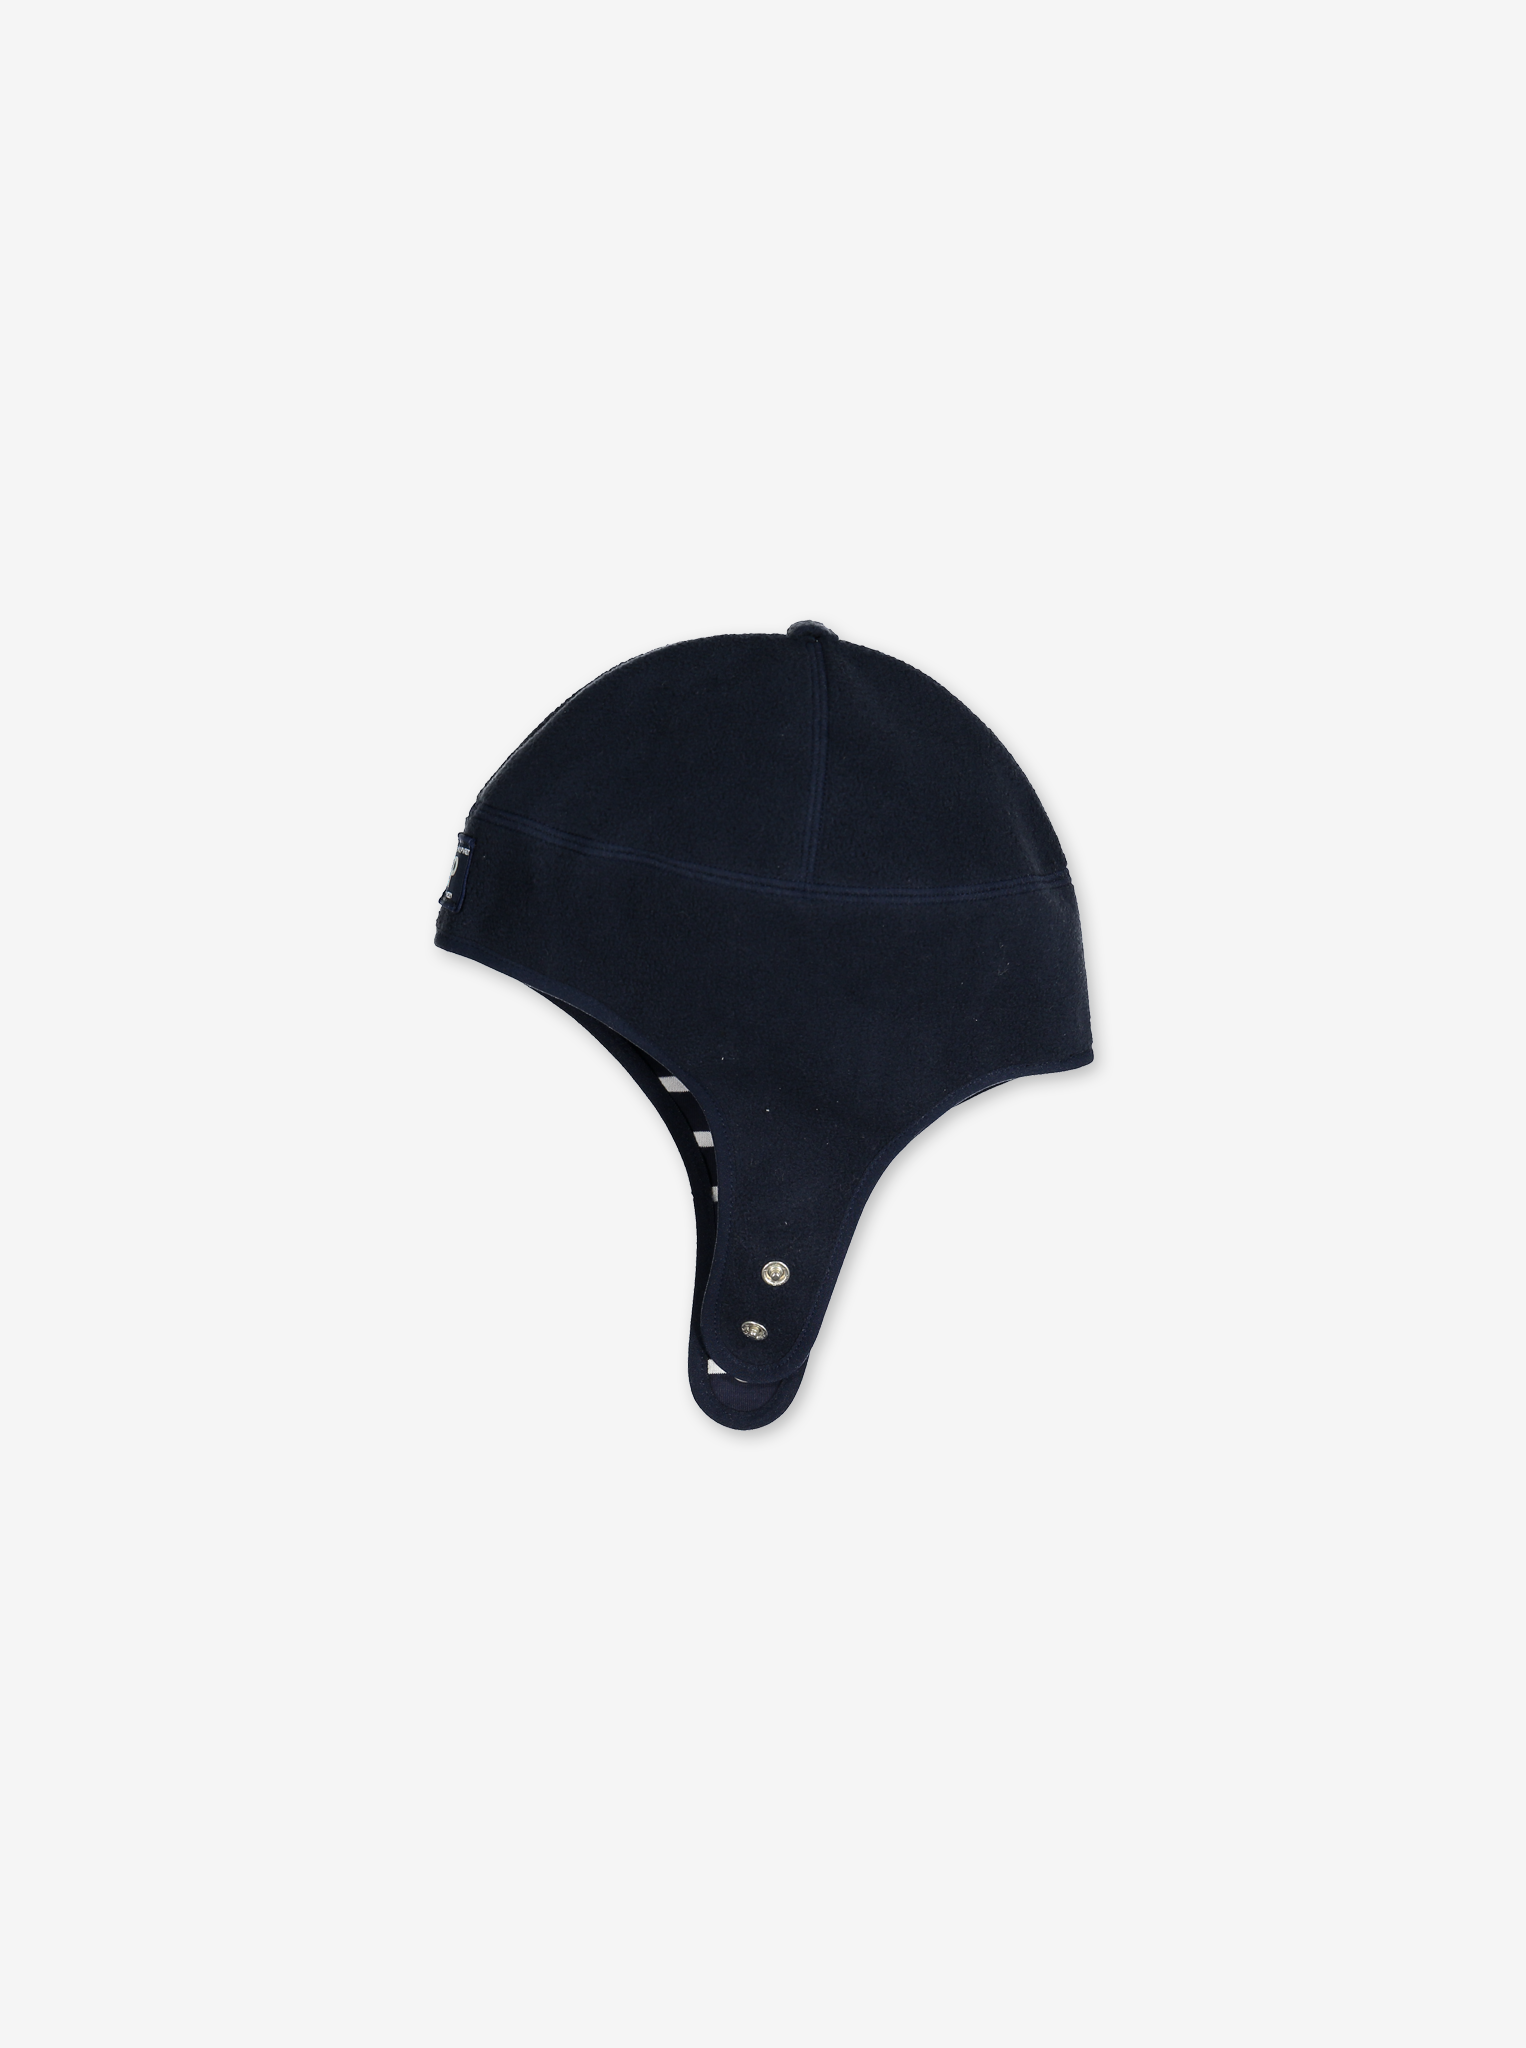 Wind Fleece Baby Hat---Navy---Unisex---1-24m